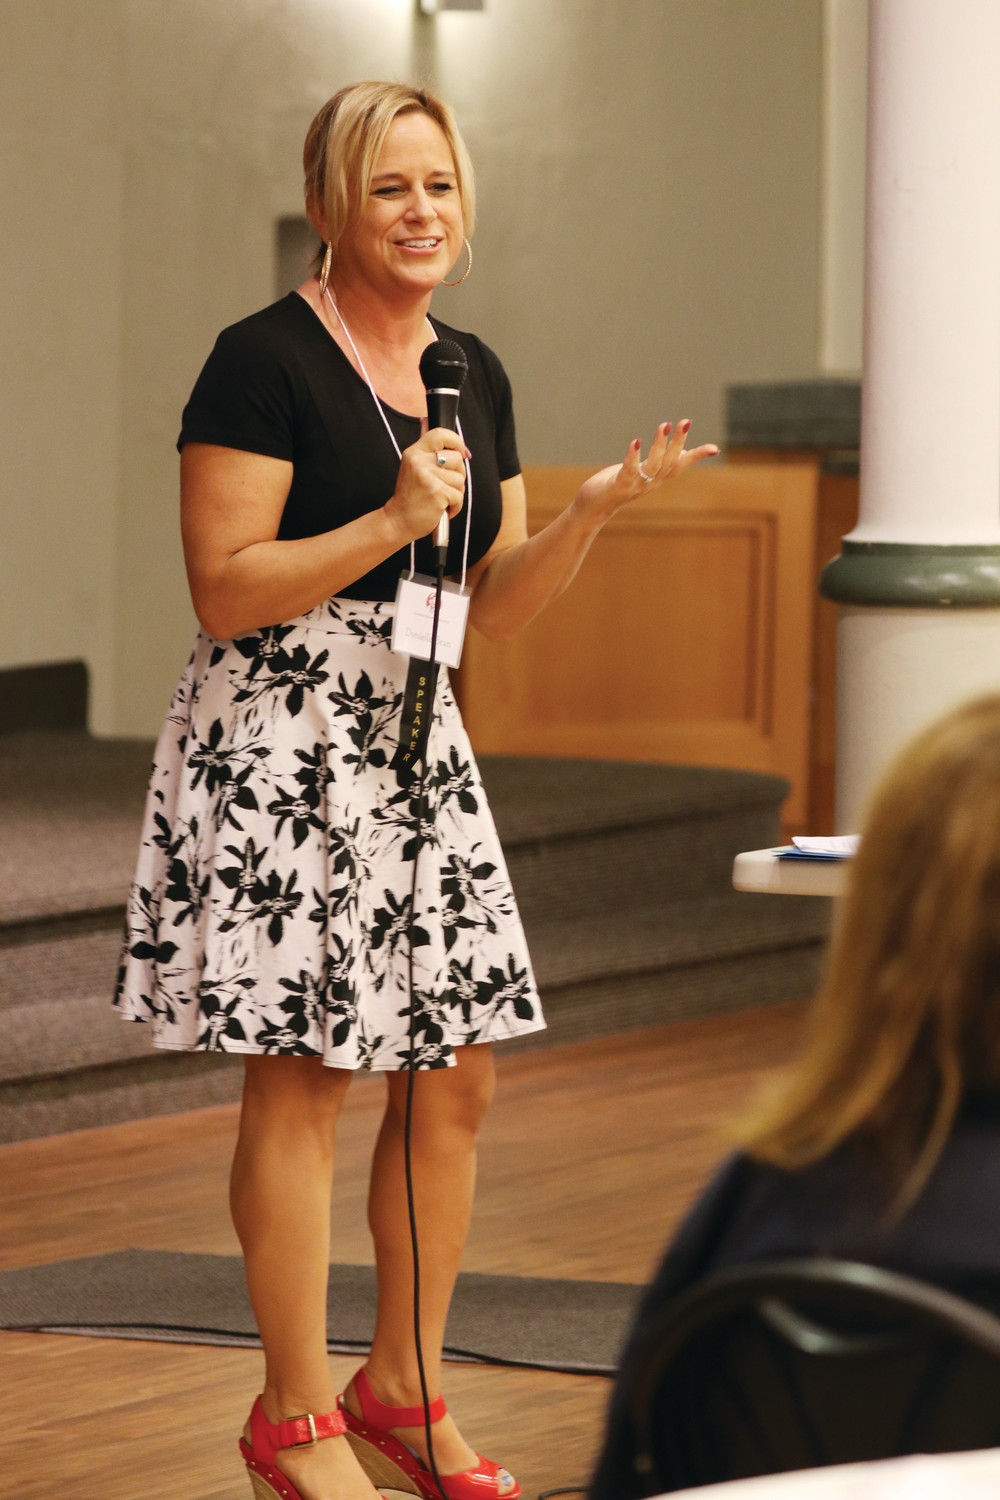 Danielle Bean and Kelly Nieto served as keynote speakers, and brought humor and inspired witnesses to the Catholic Women's Conference held Oct. 6.